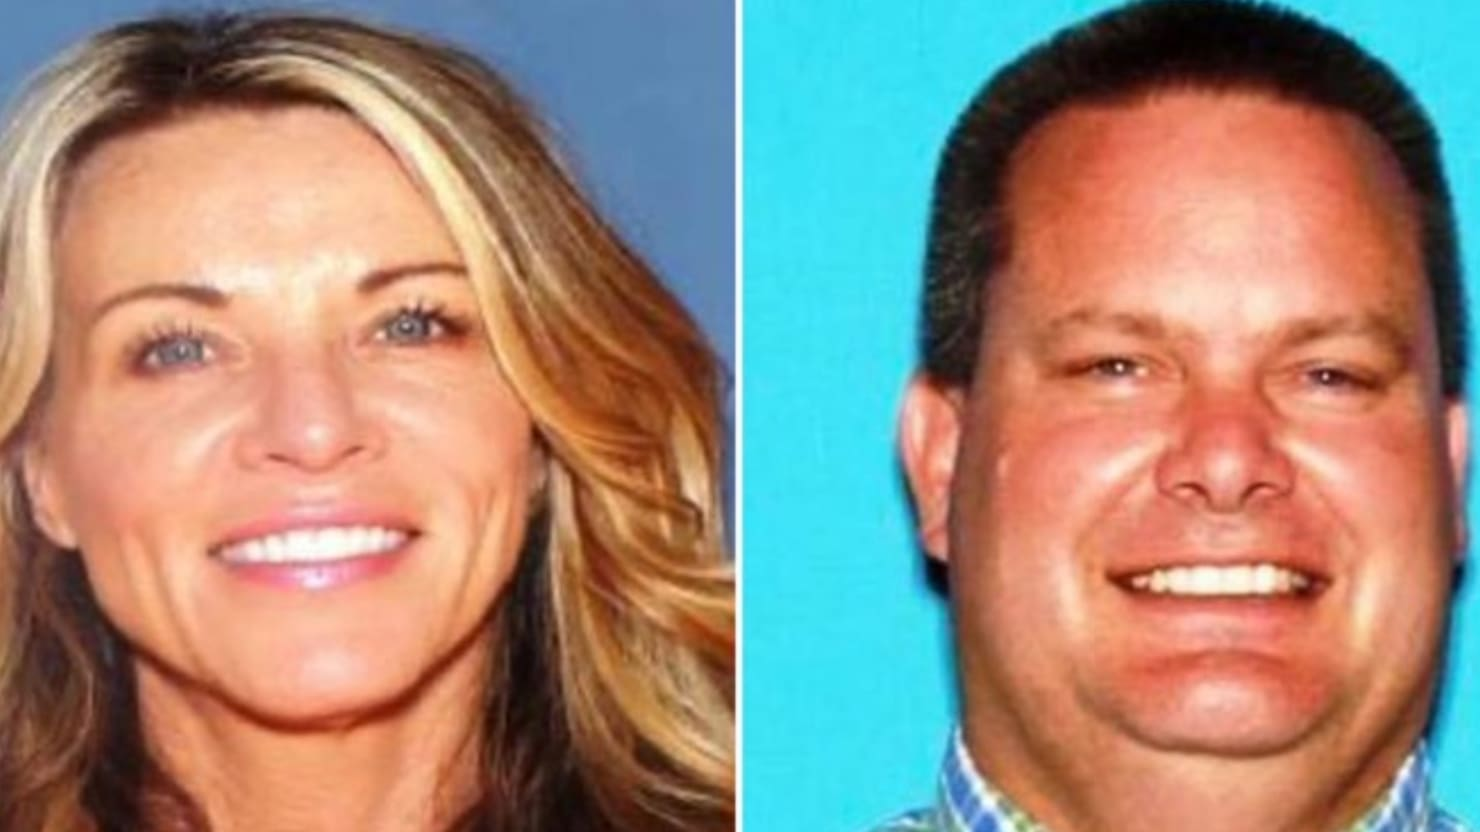 Idaho Cops Blast Doomsday Parents of Missing Kids